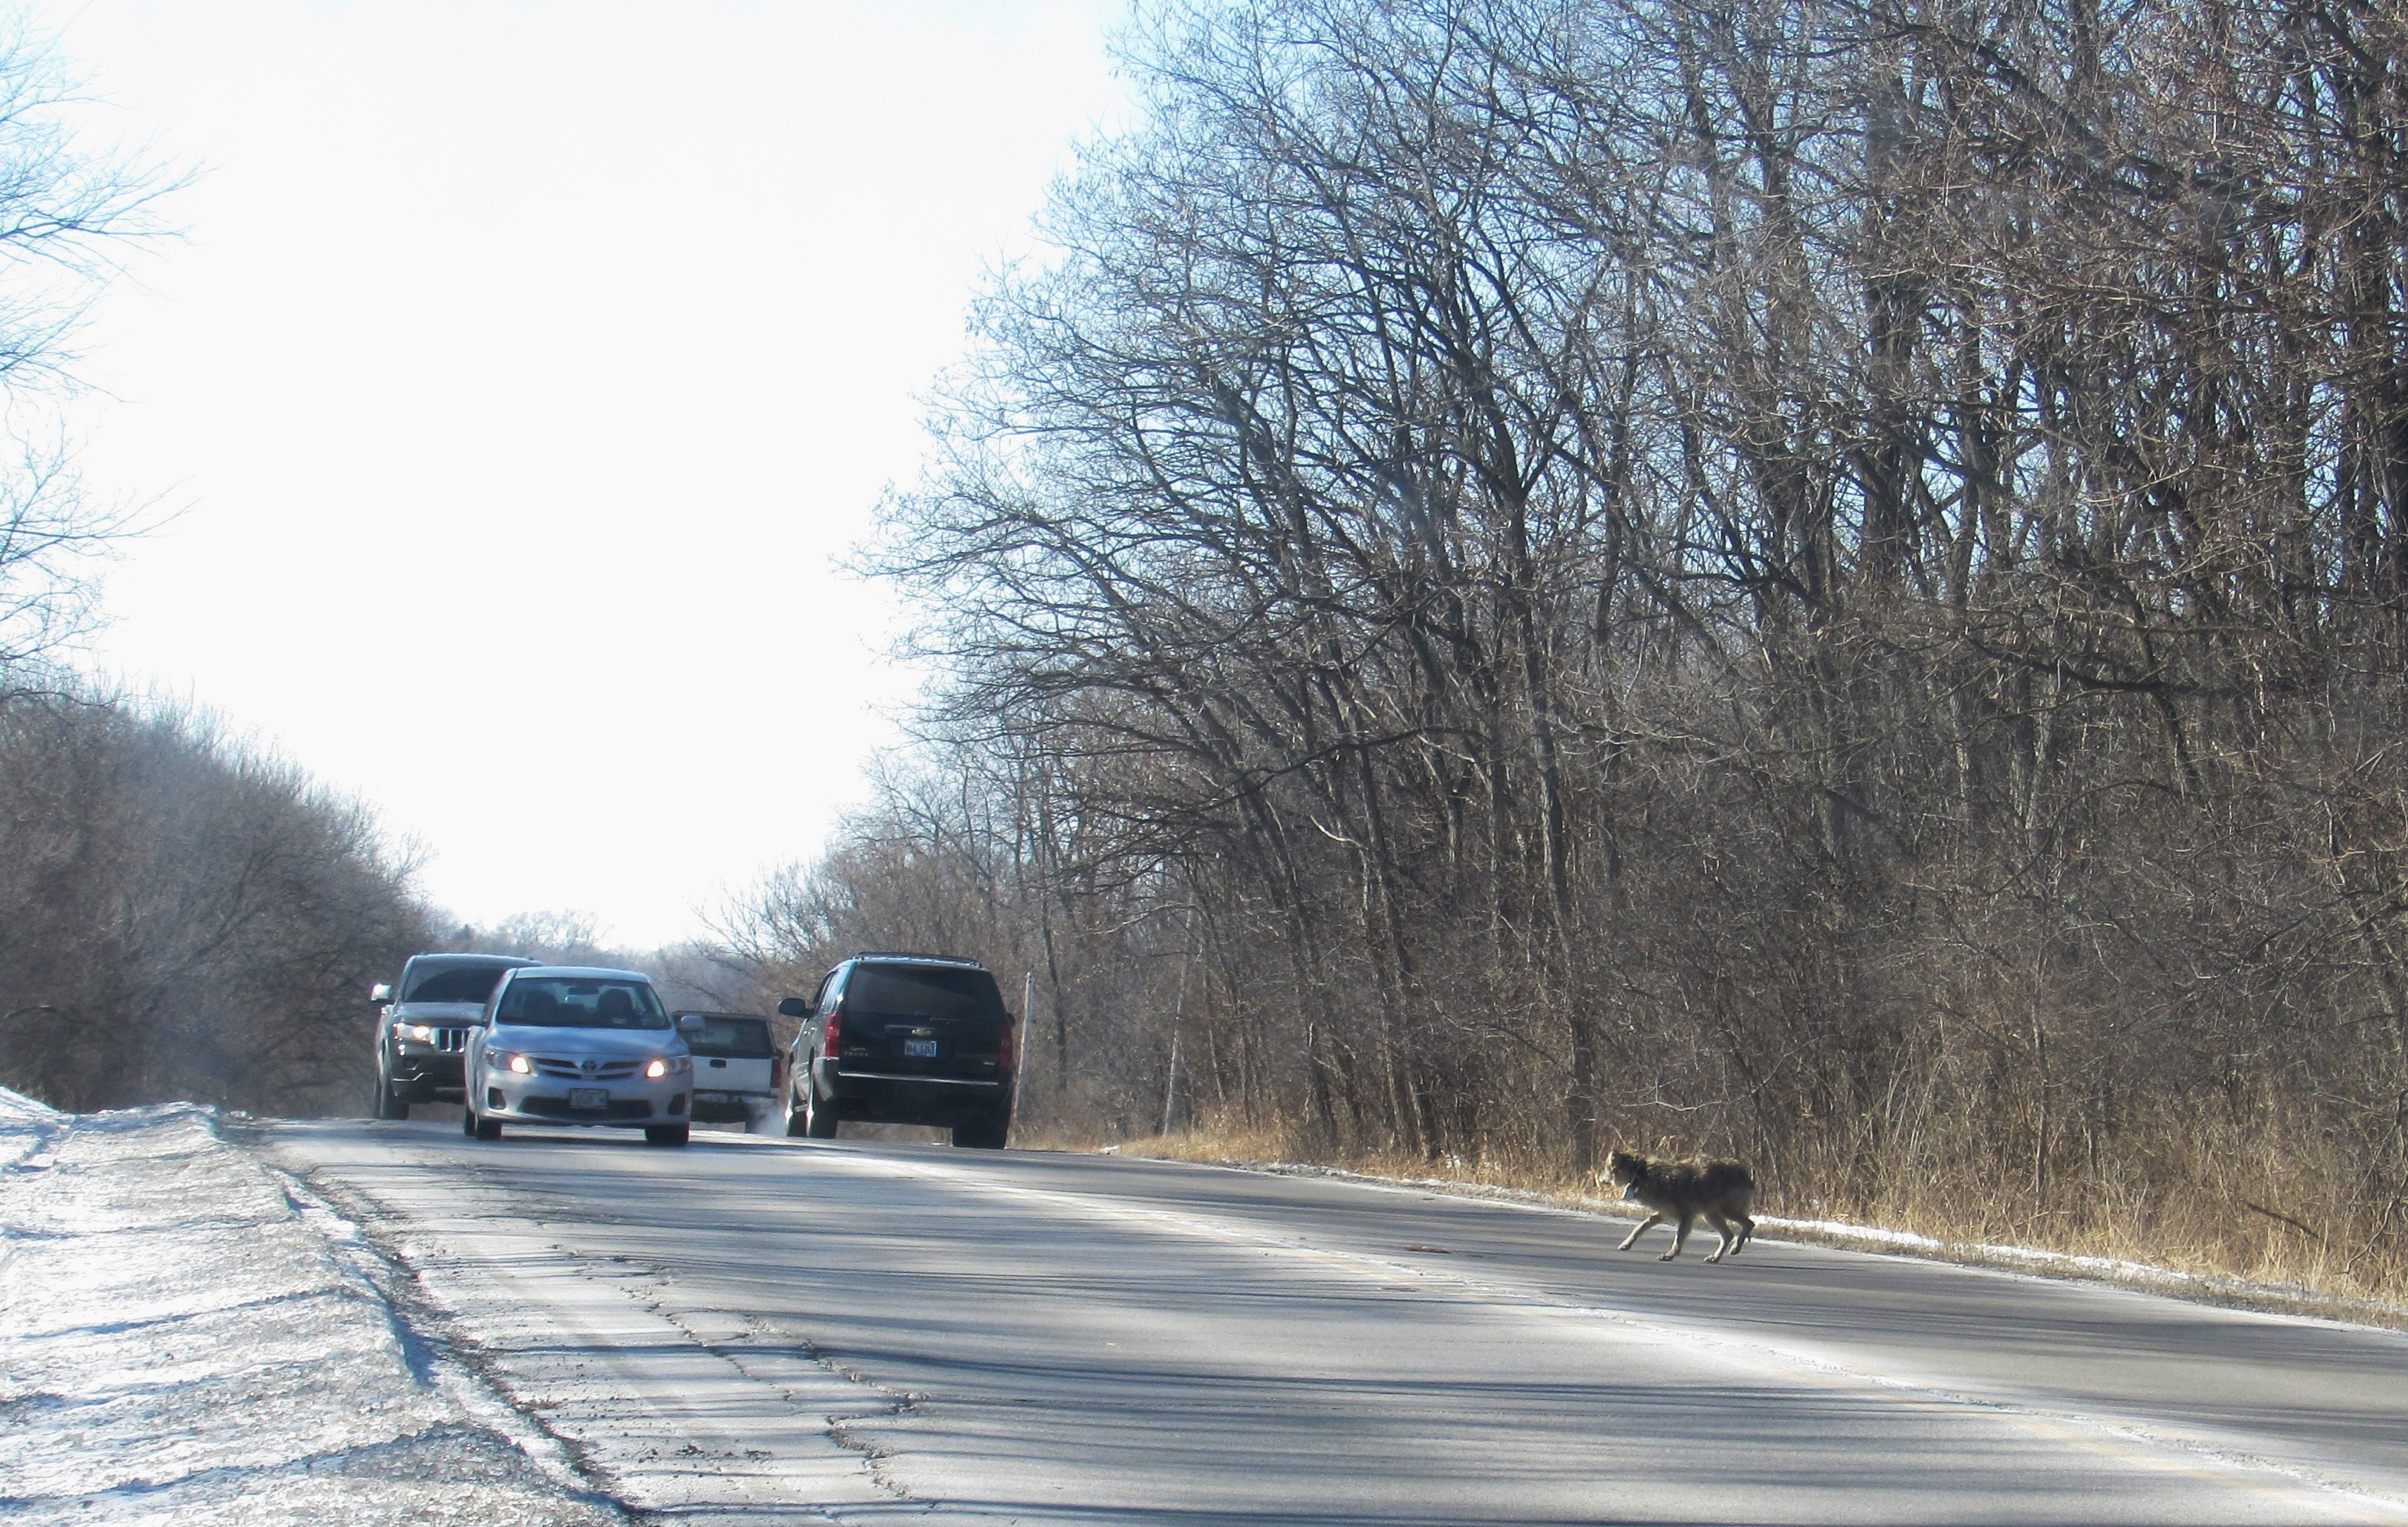 Coyote running in traffic